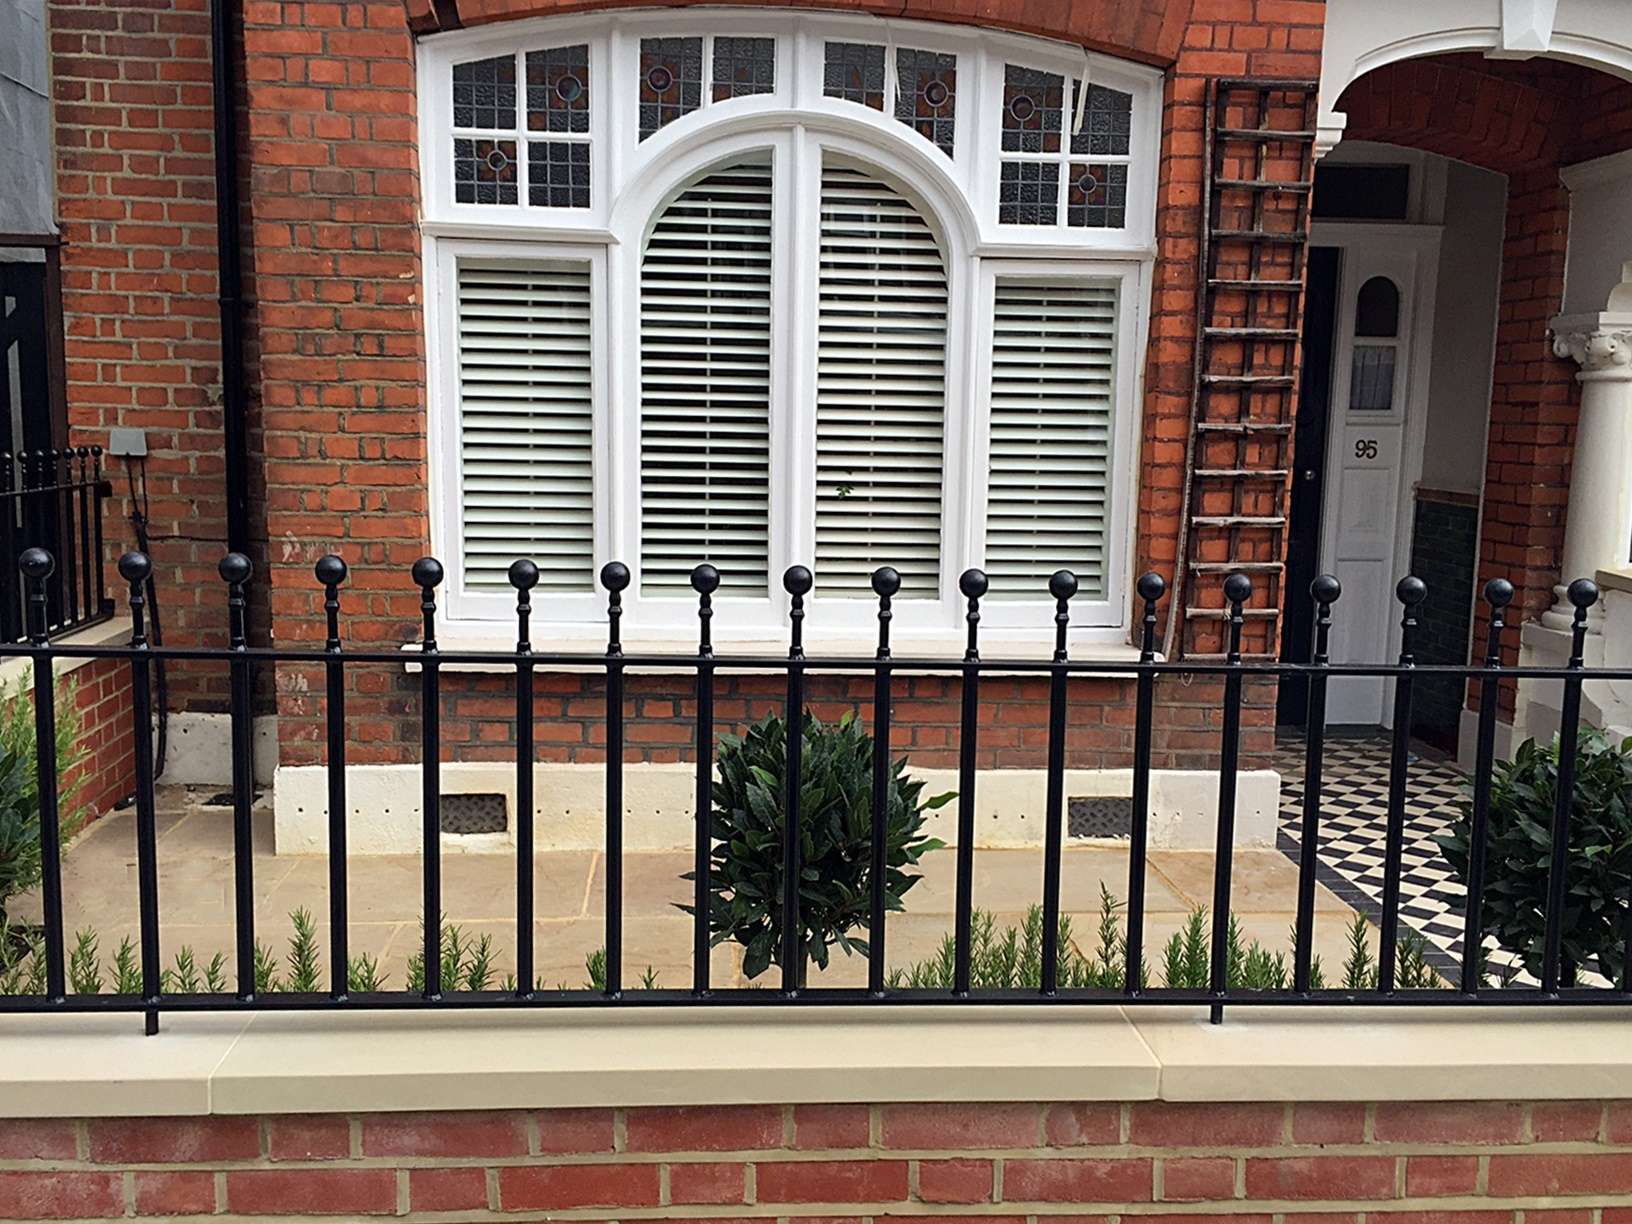 Low maintenance cap coping red brick garden front wall metal gate rails plants London Balham Streatham Brixton Vauxhall